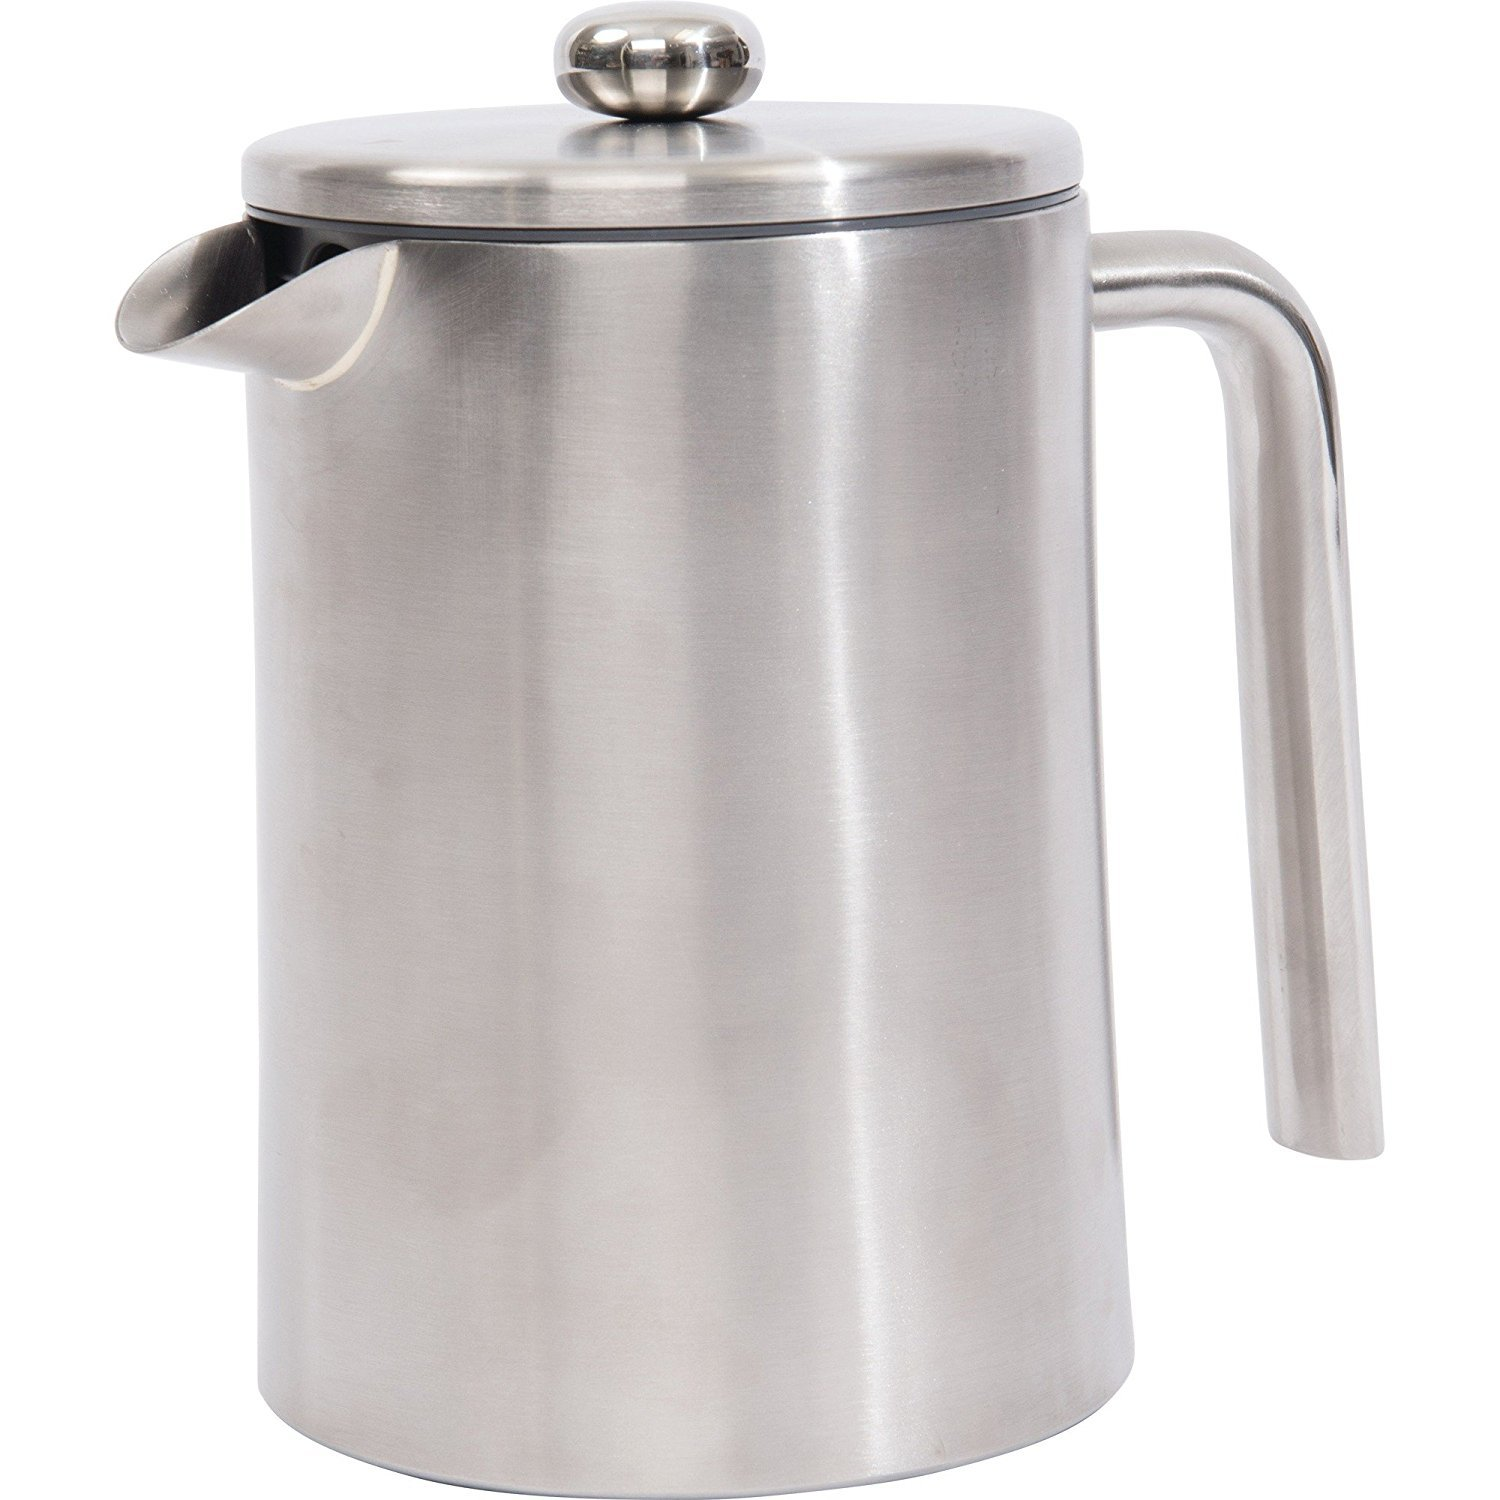 Wyndham House 1.2L 40.5oz Double Wall Stainless Steel 304 French Press